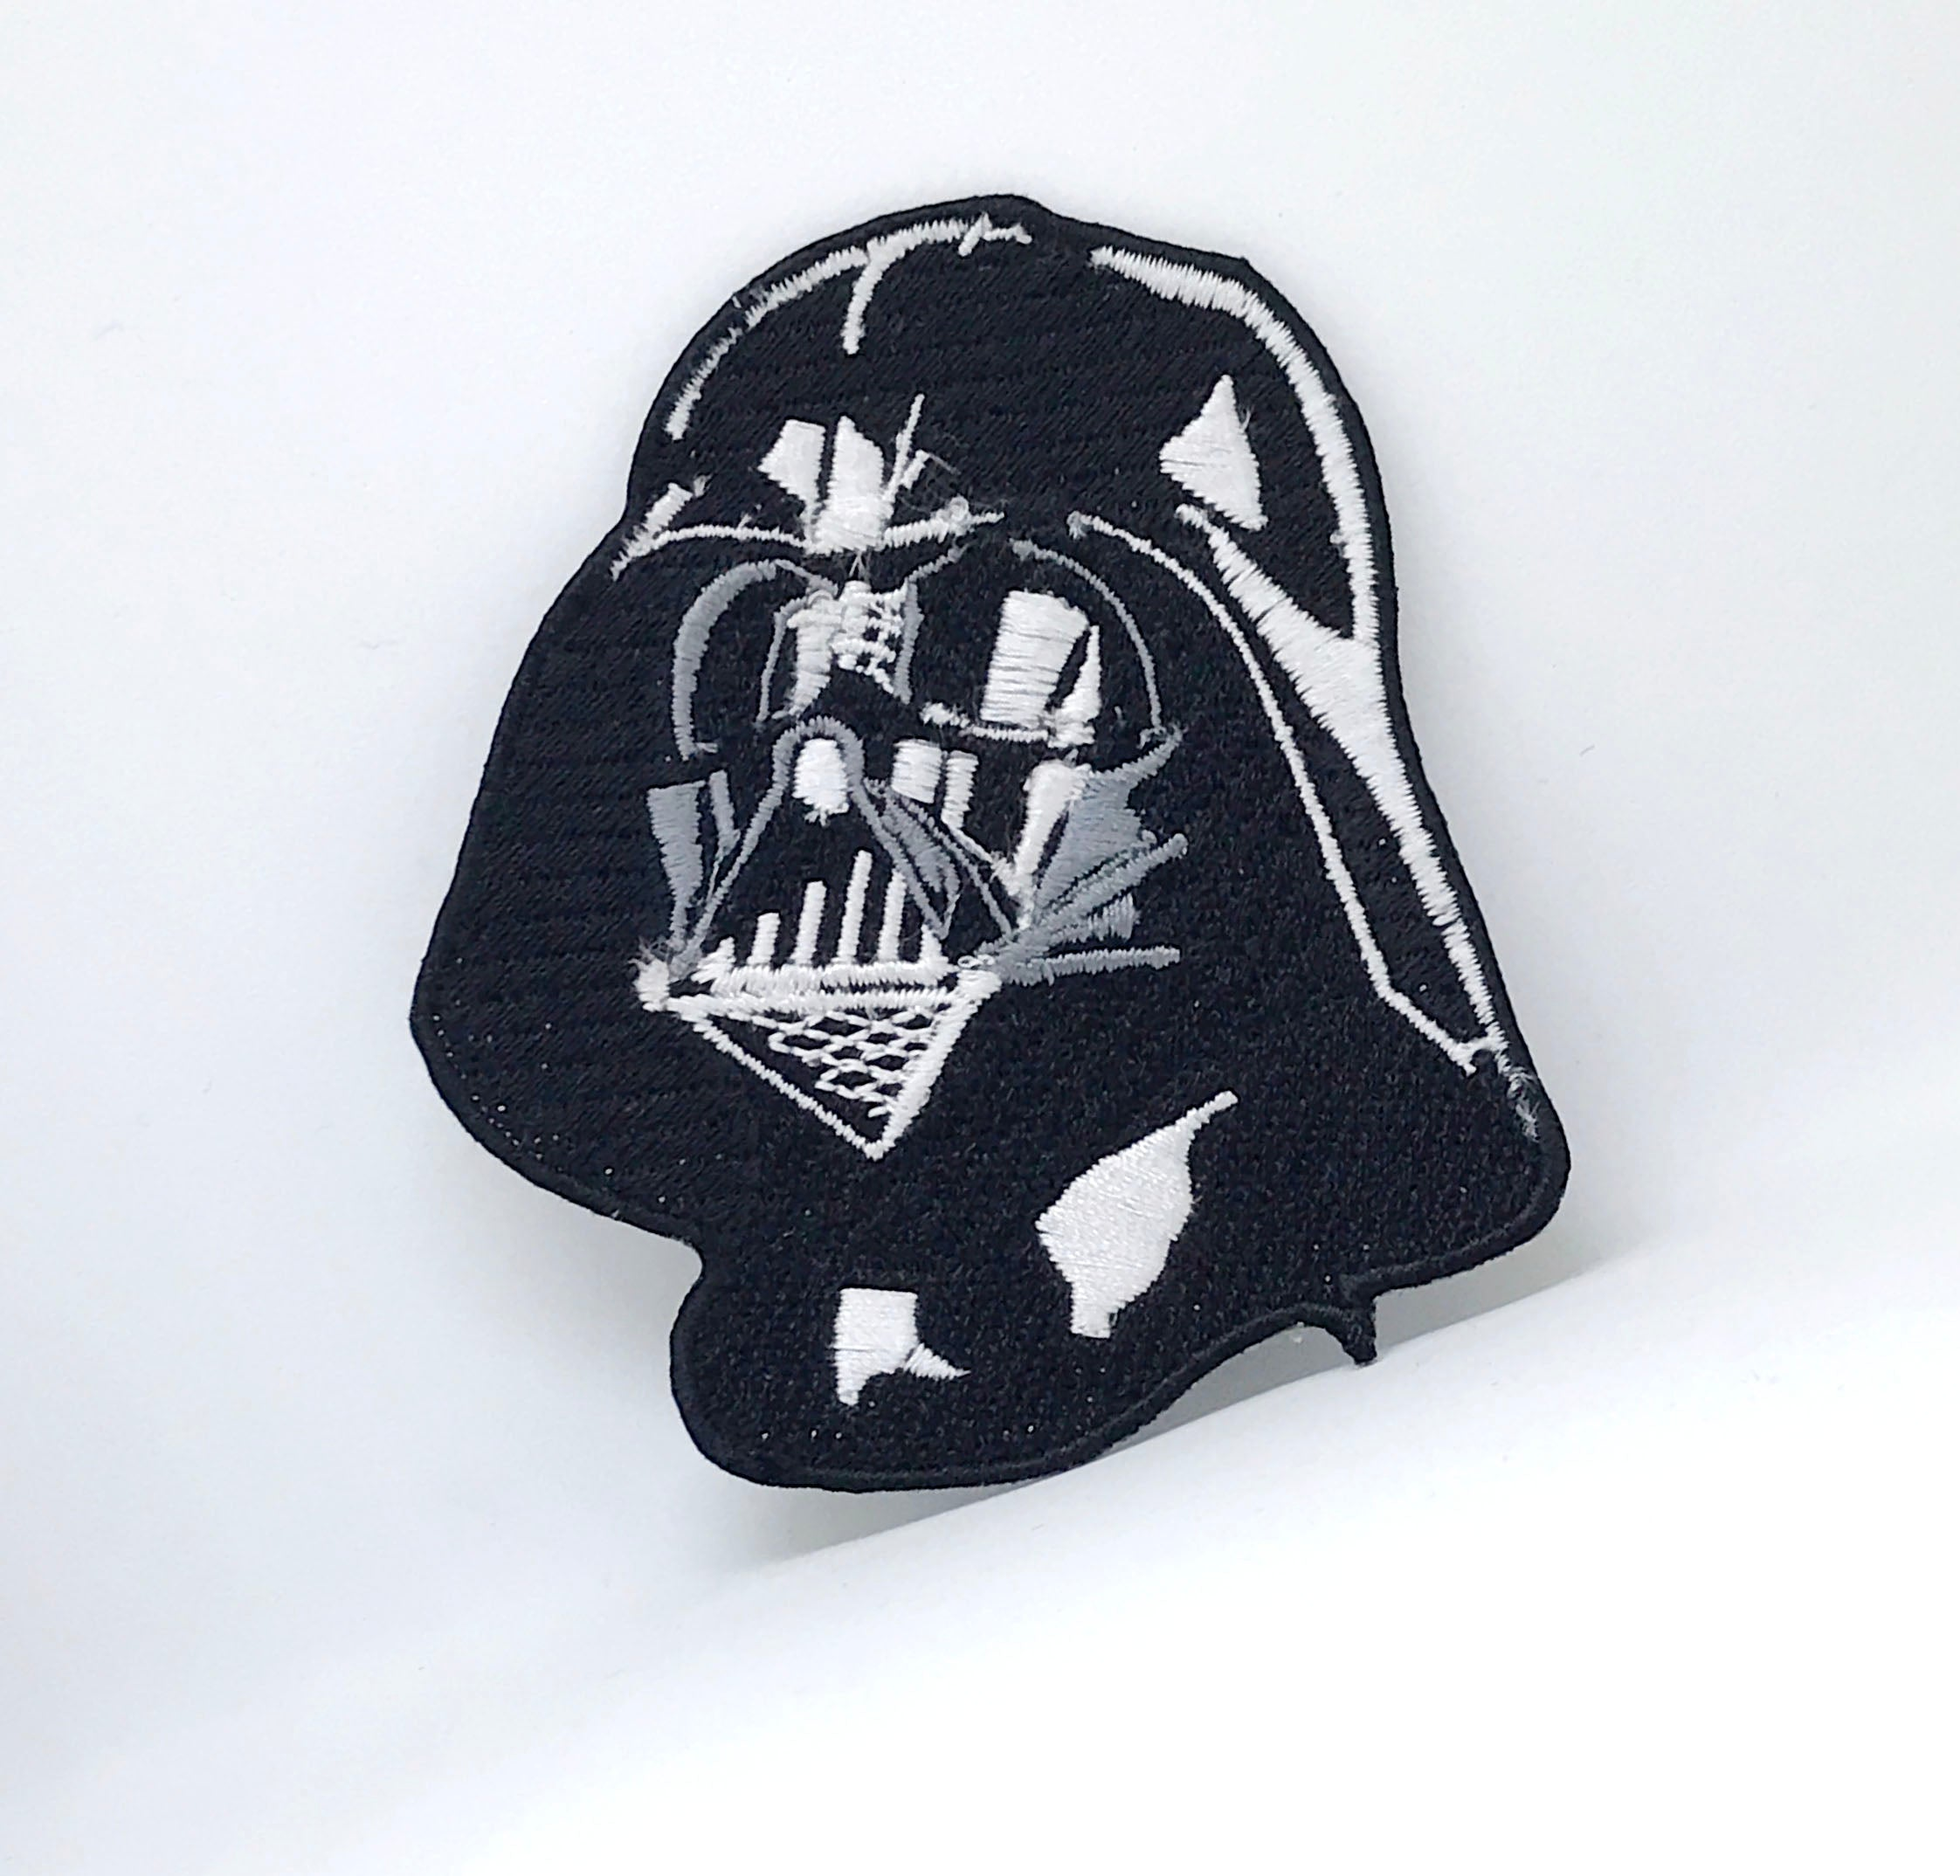 STAR WARS Movies Iron or Sew on Embroidered Patches - Darth Vader